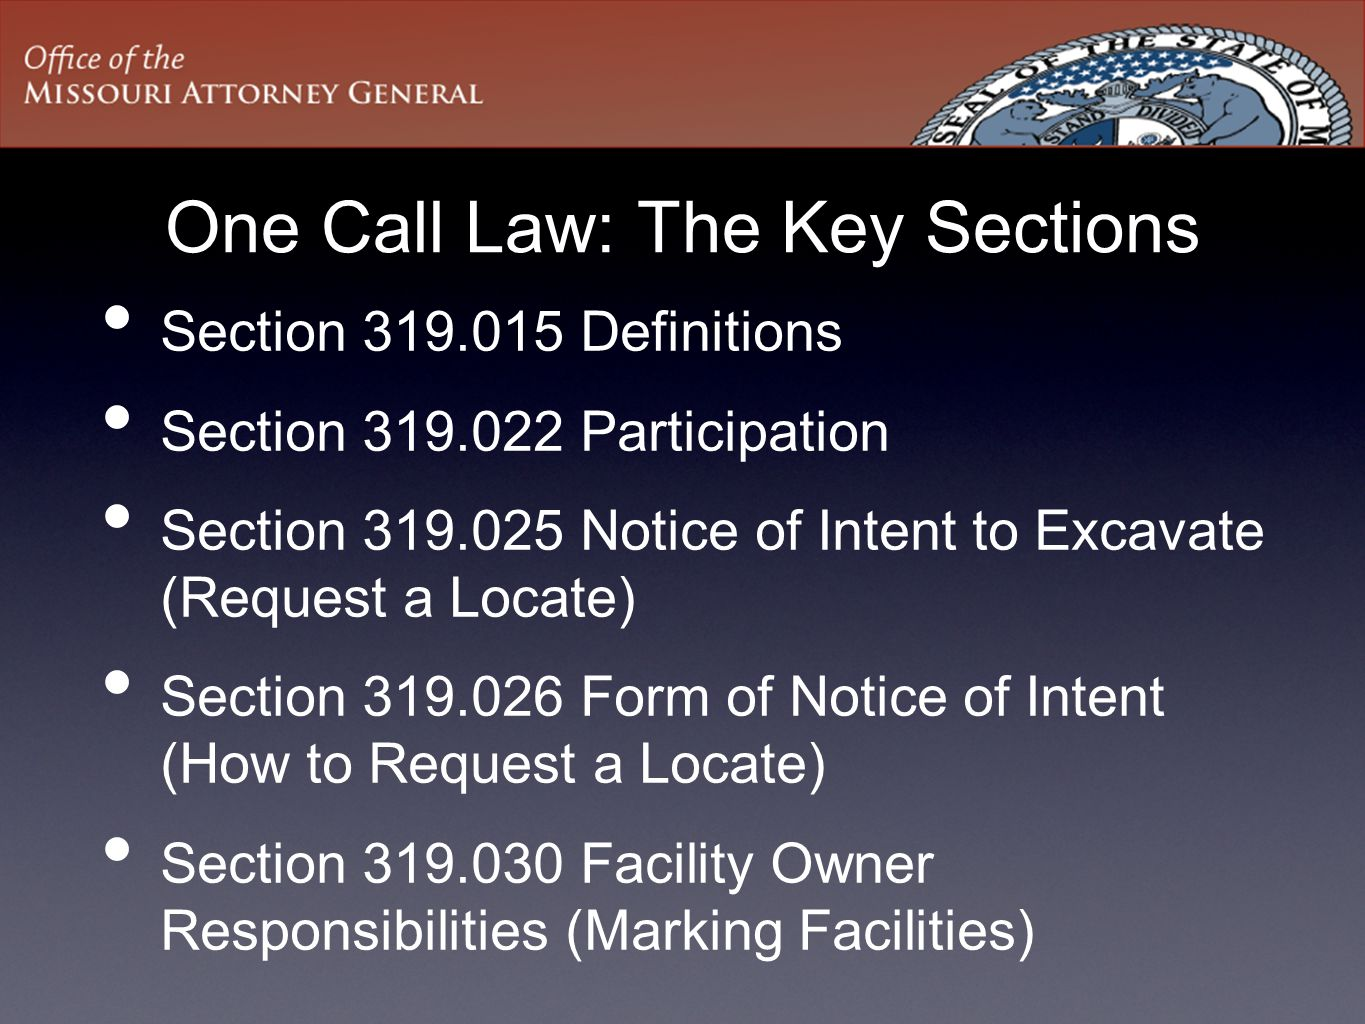 One Call Law: The Key Sections